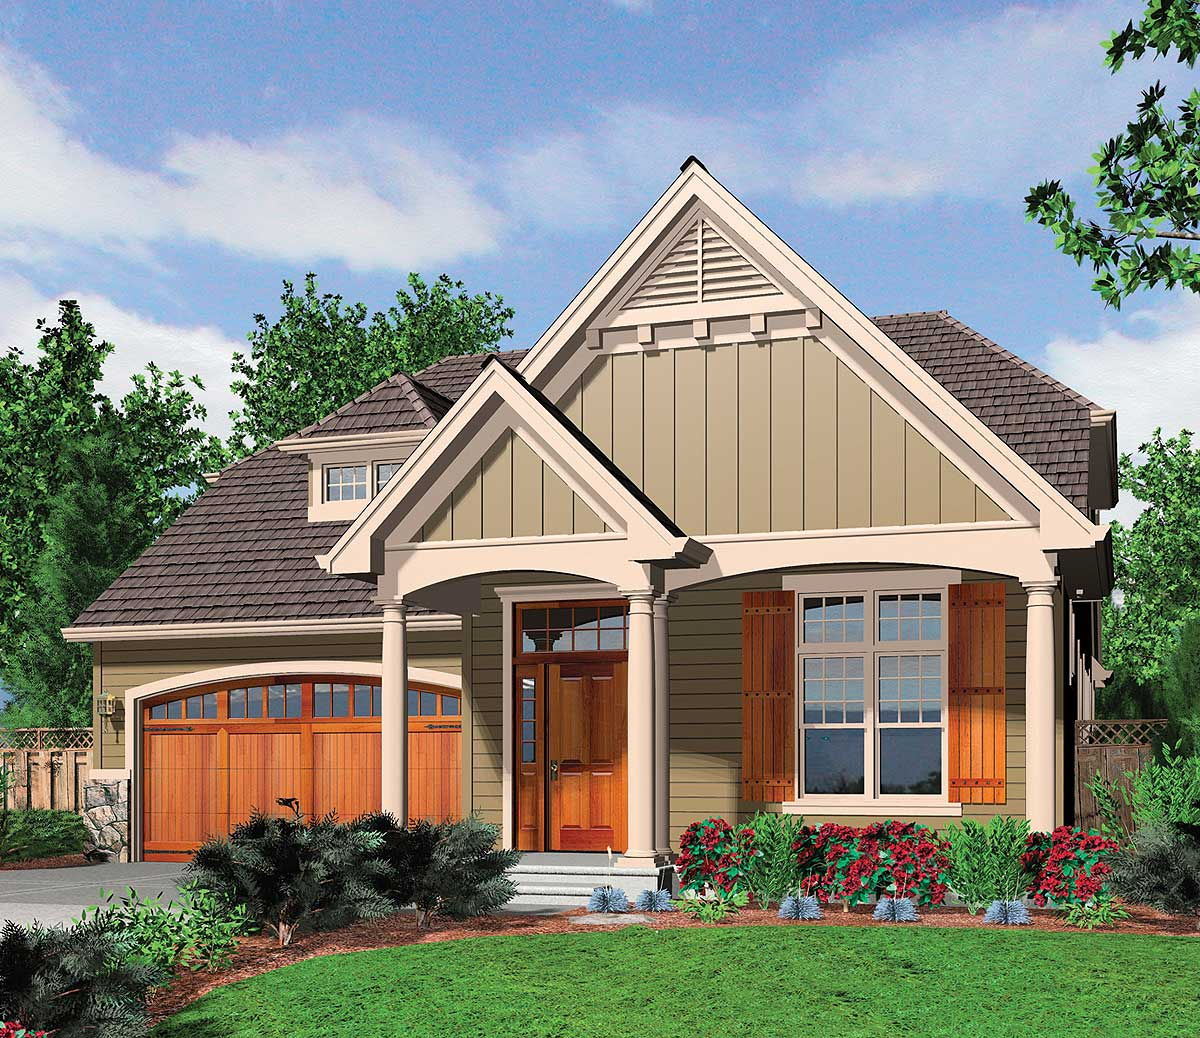 French cottage home plan 69054am architectural designs for French farmhouse plans